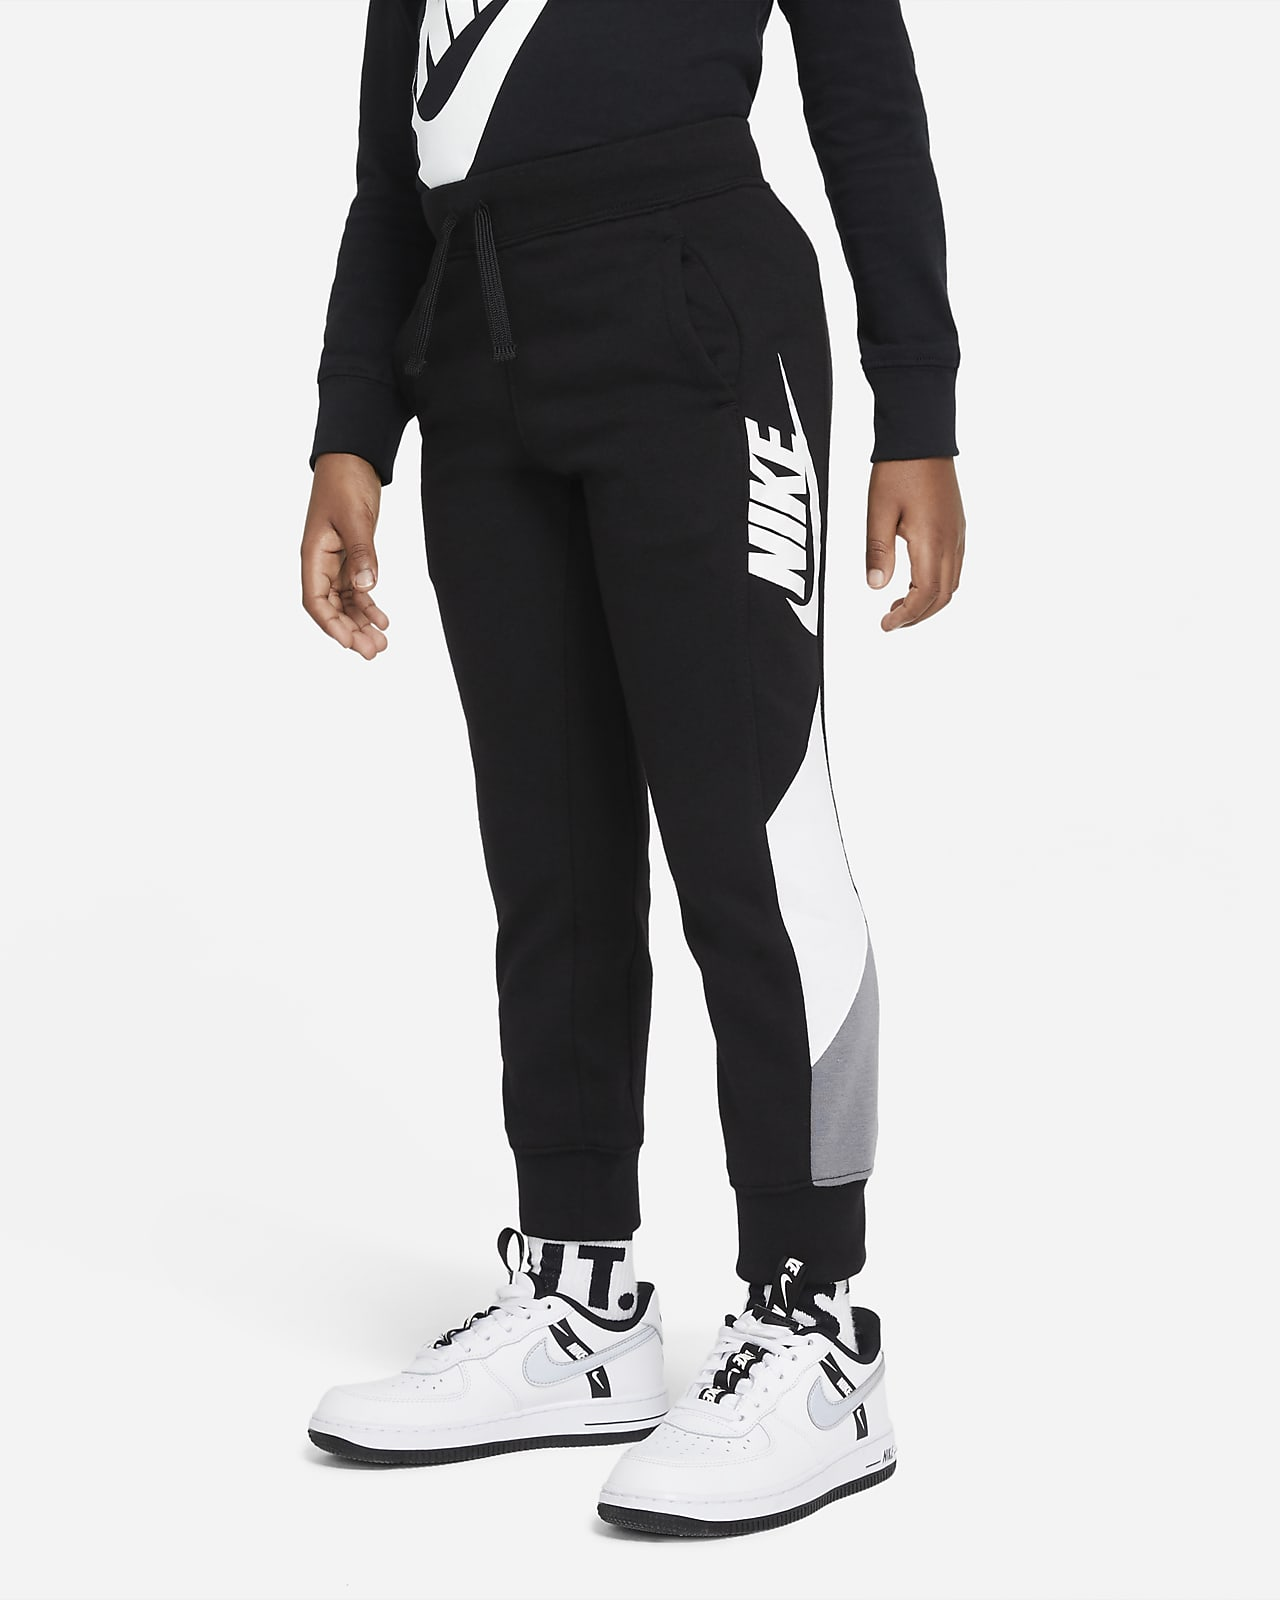 Nike Little Kids' French Terry Joggers